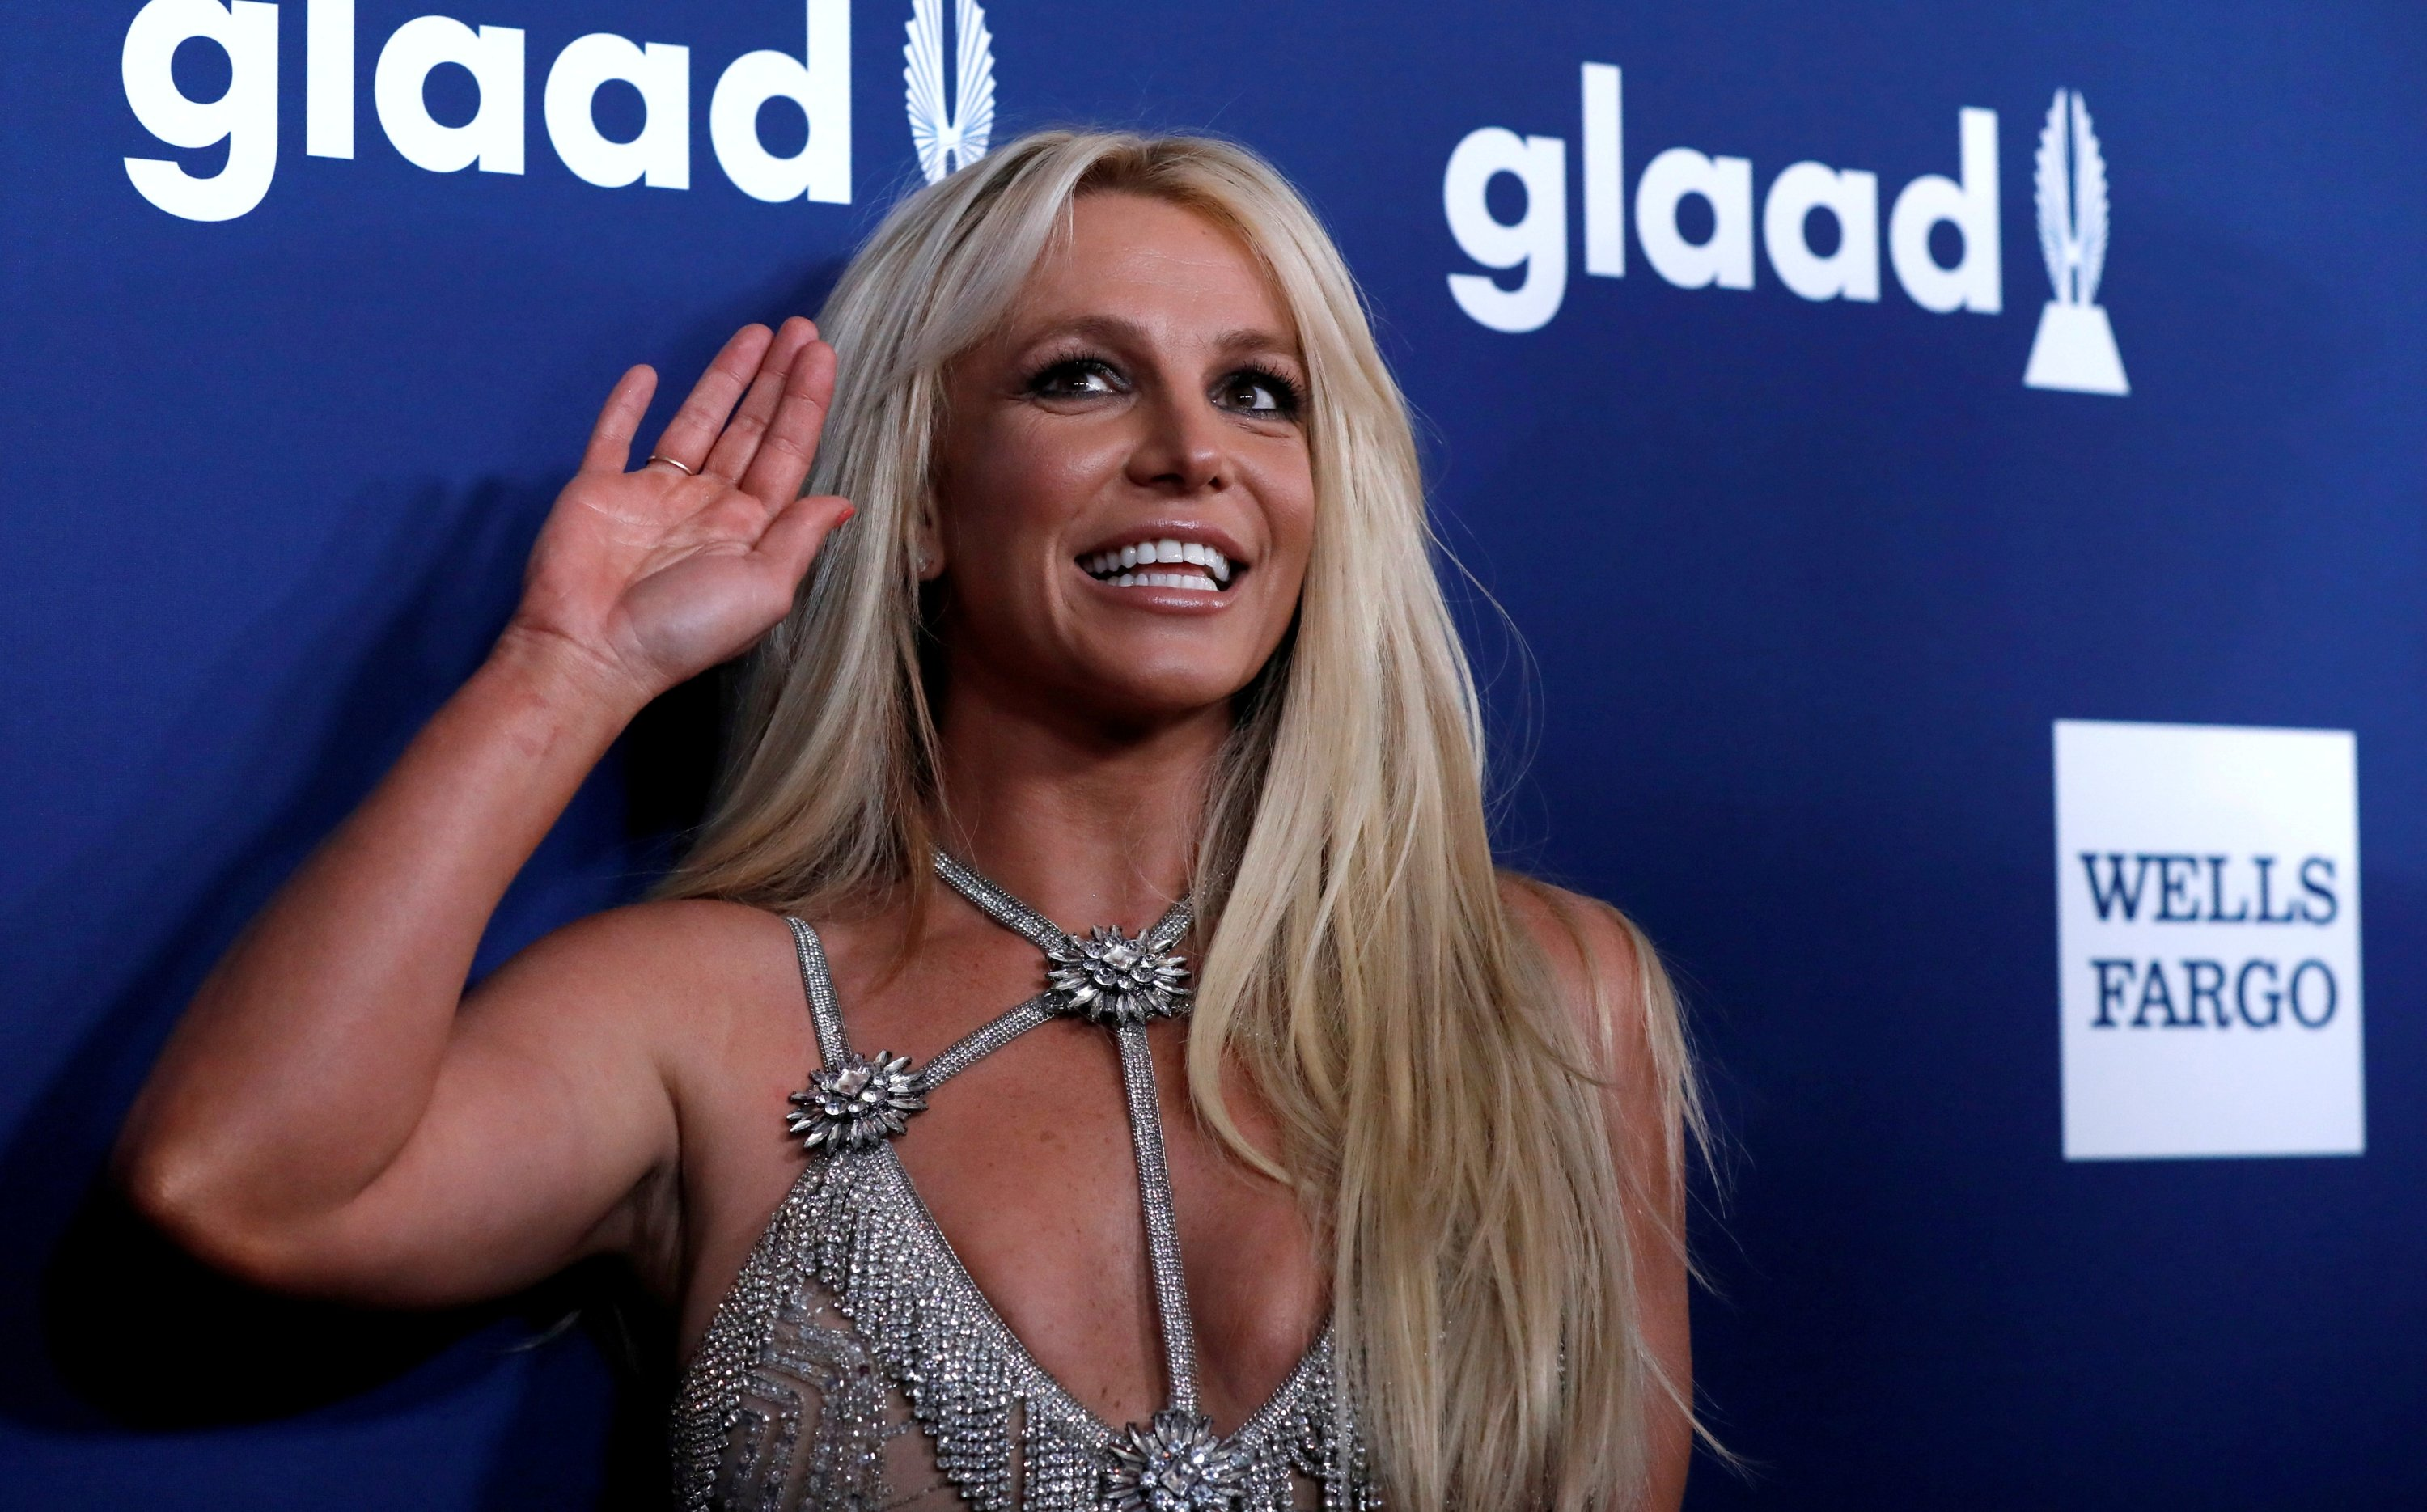 Singer Britney Spears poses at the 29th Annual GLAAD Media Awards in Beverly Hills, California, U.S., April 12, 2018. (REUTERS Photo)